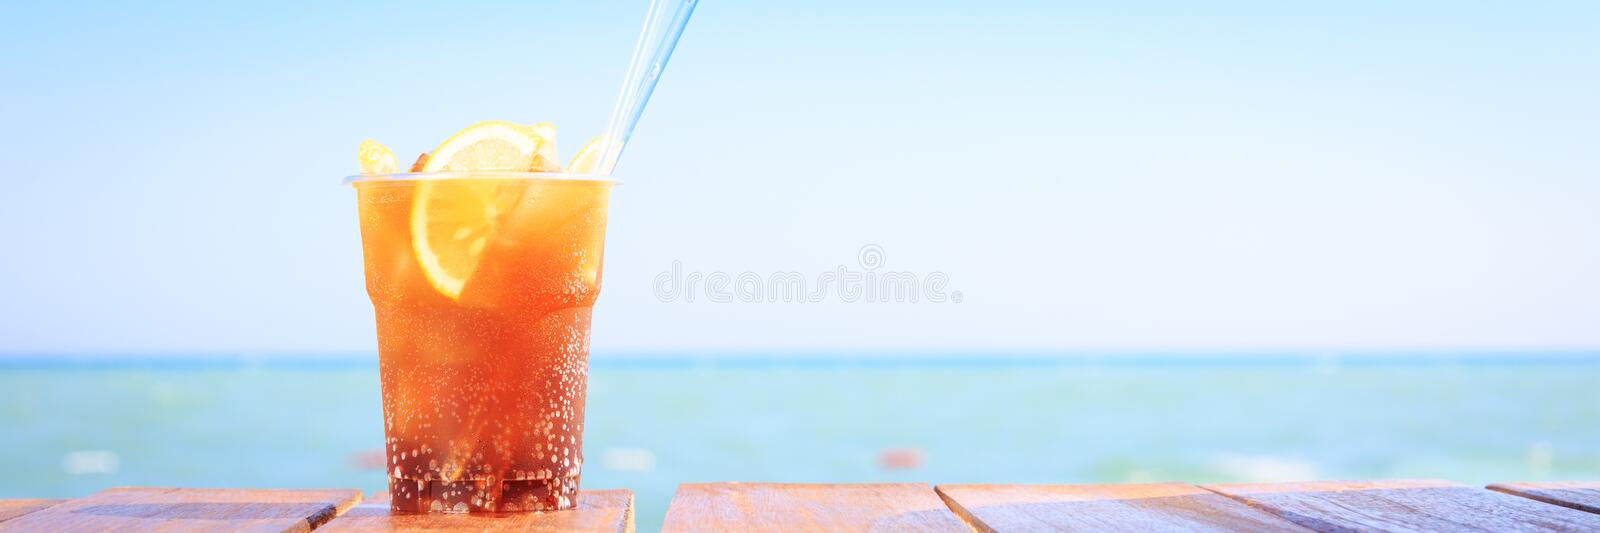 Concept of luxury tropical vacation. One Cuba Libre cocktail on. Concept of luxury vacation. Cuba Libre cocktail on the pier. Long island ice tea cocktail on the royalty free stock images